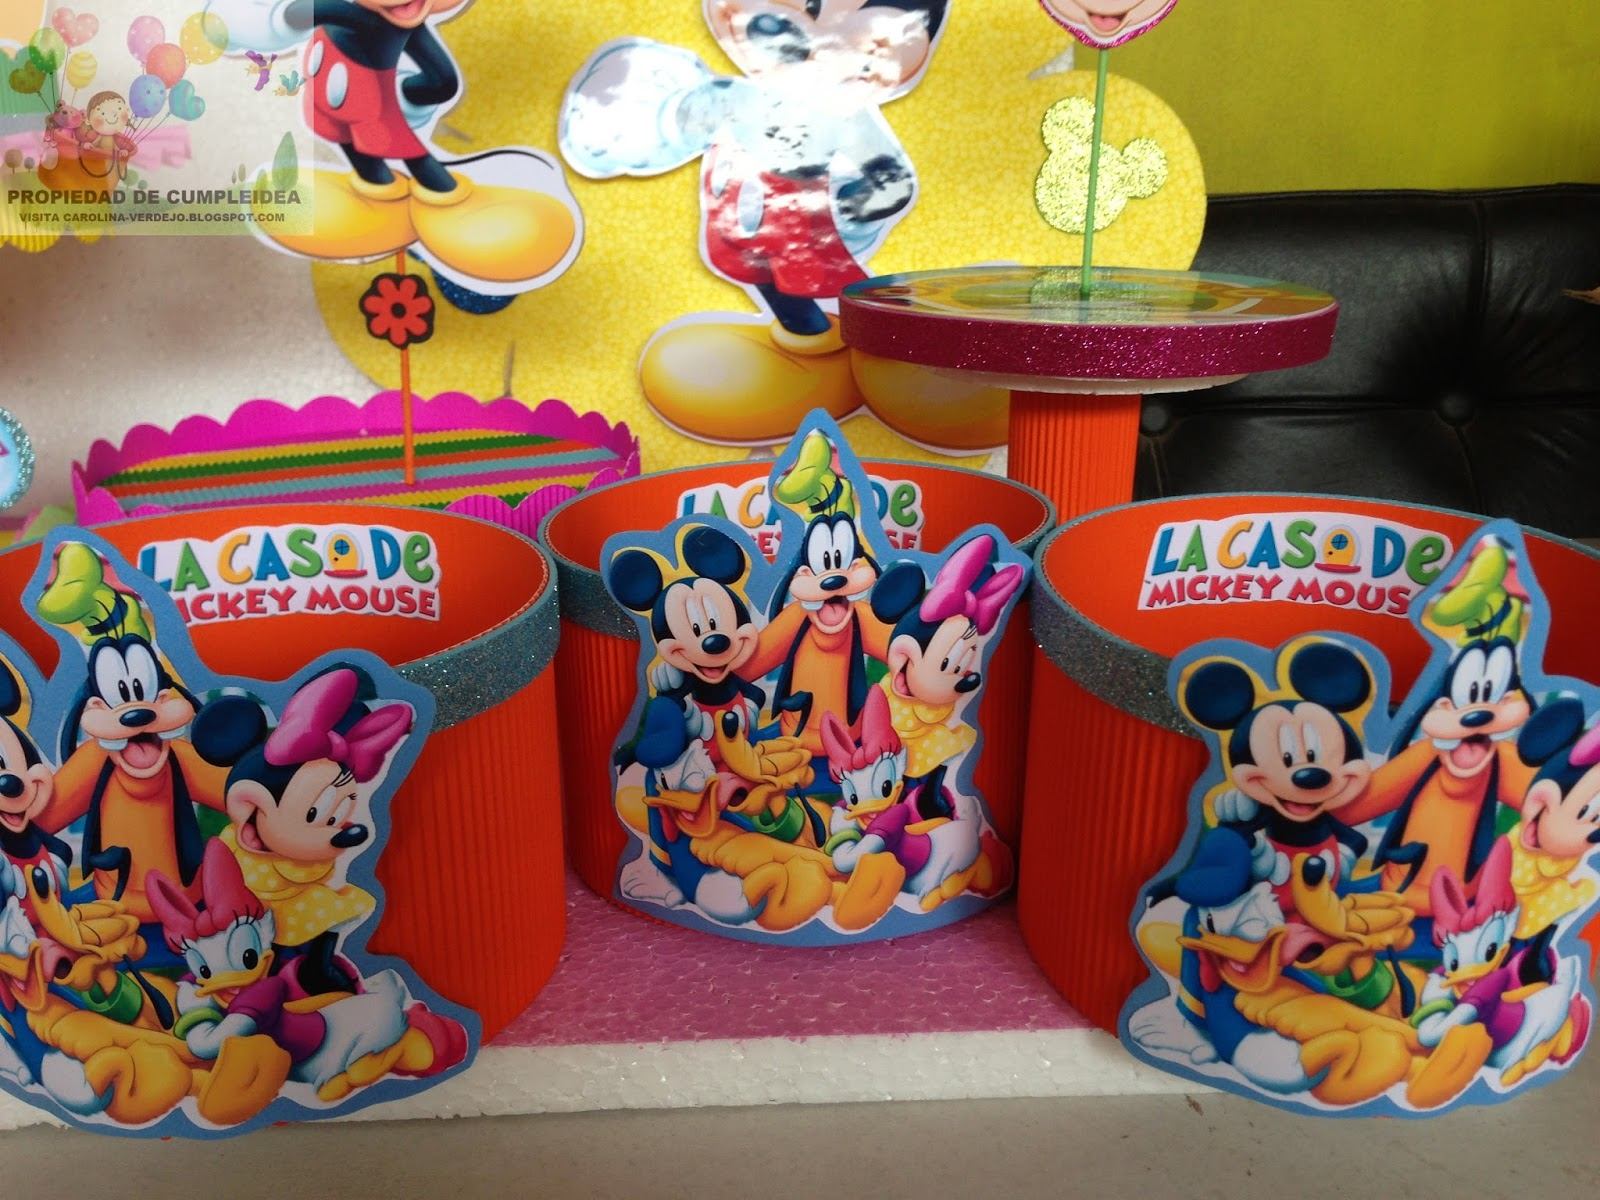 Mickey Mouse Decoraciones Para Fiestas ~ Download image Decoraciones Para Fiestas De Mickey Mouse PC, Android